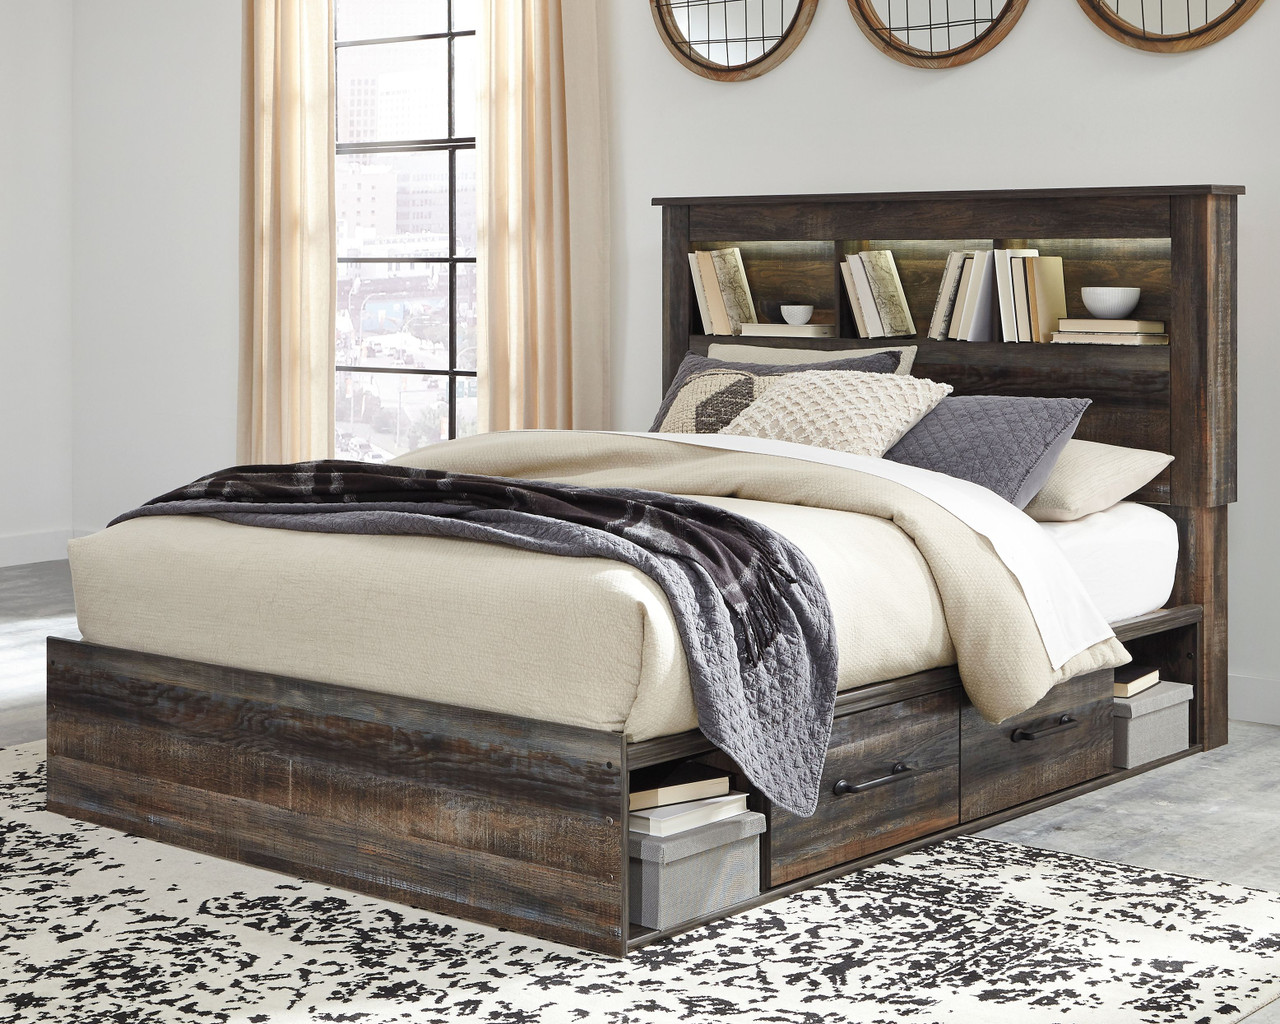 Picture of: Drystan Multi Queen Bookcase Bed With Under Bed Storage On Sale At American Furniture Of Slidell Serving Slidell La